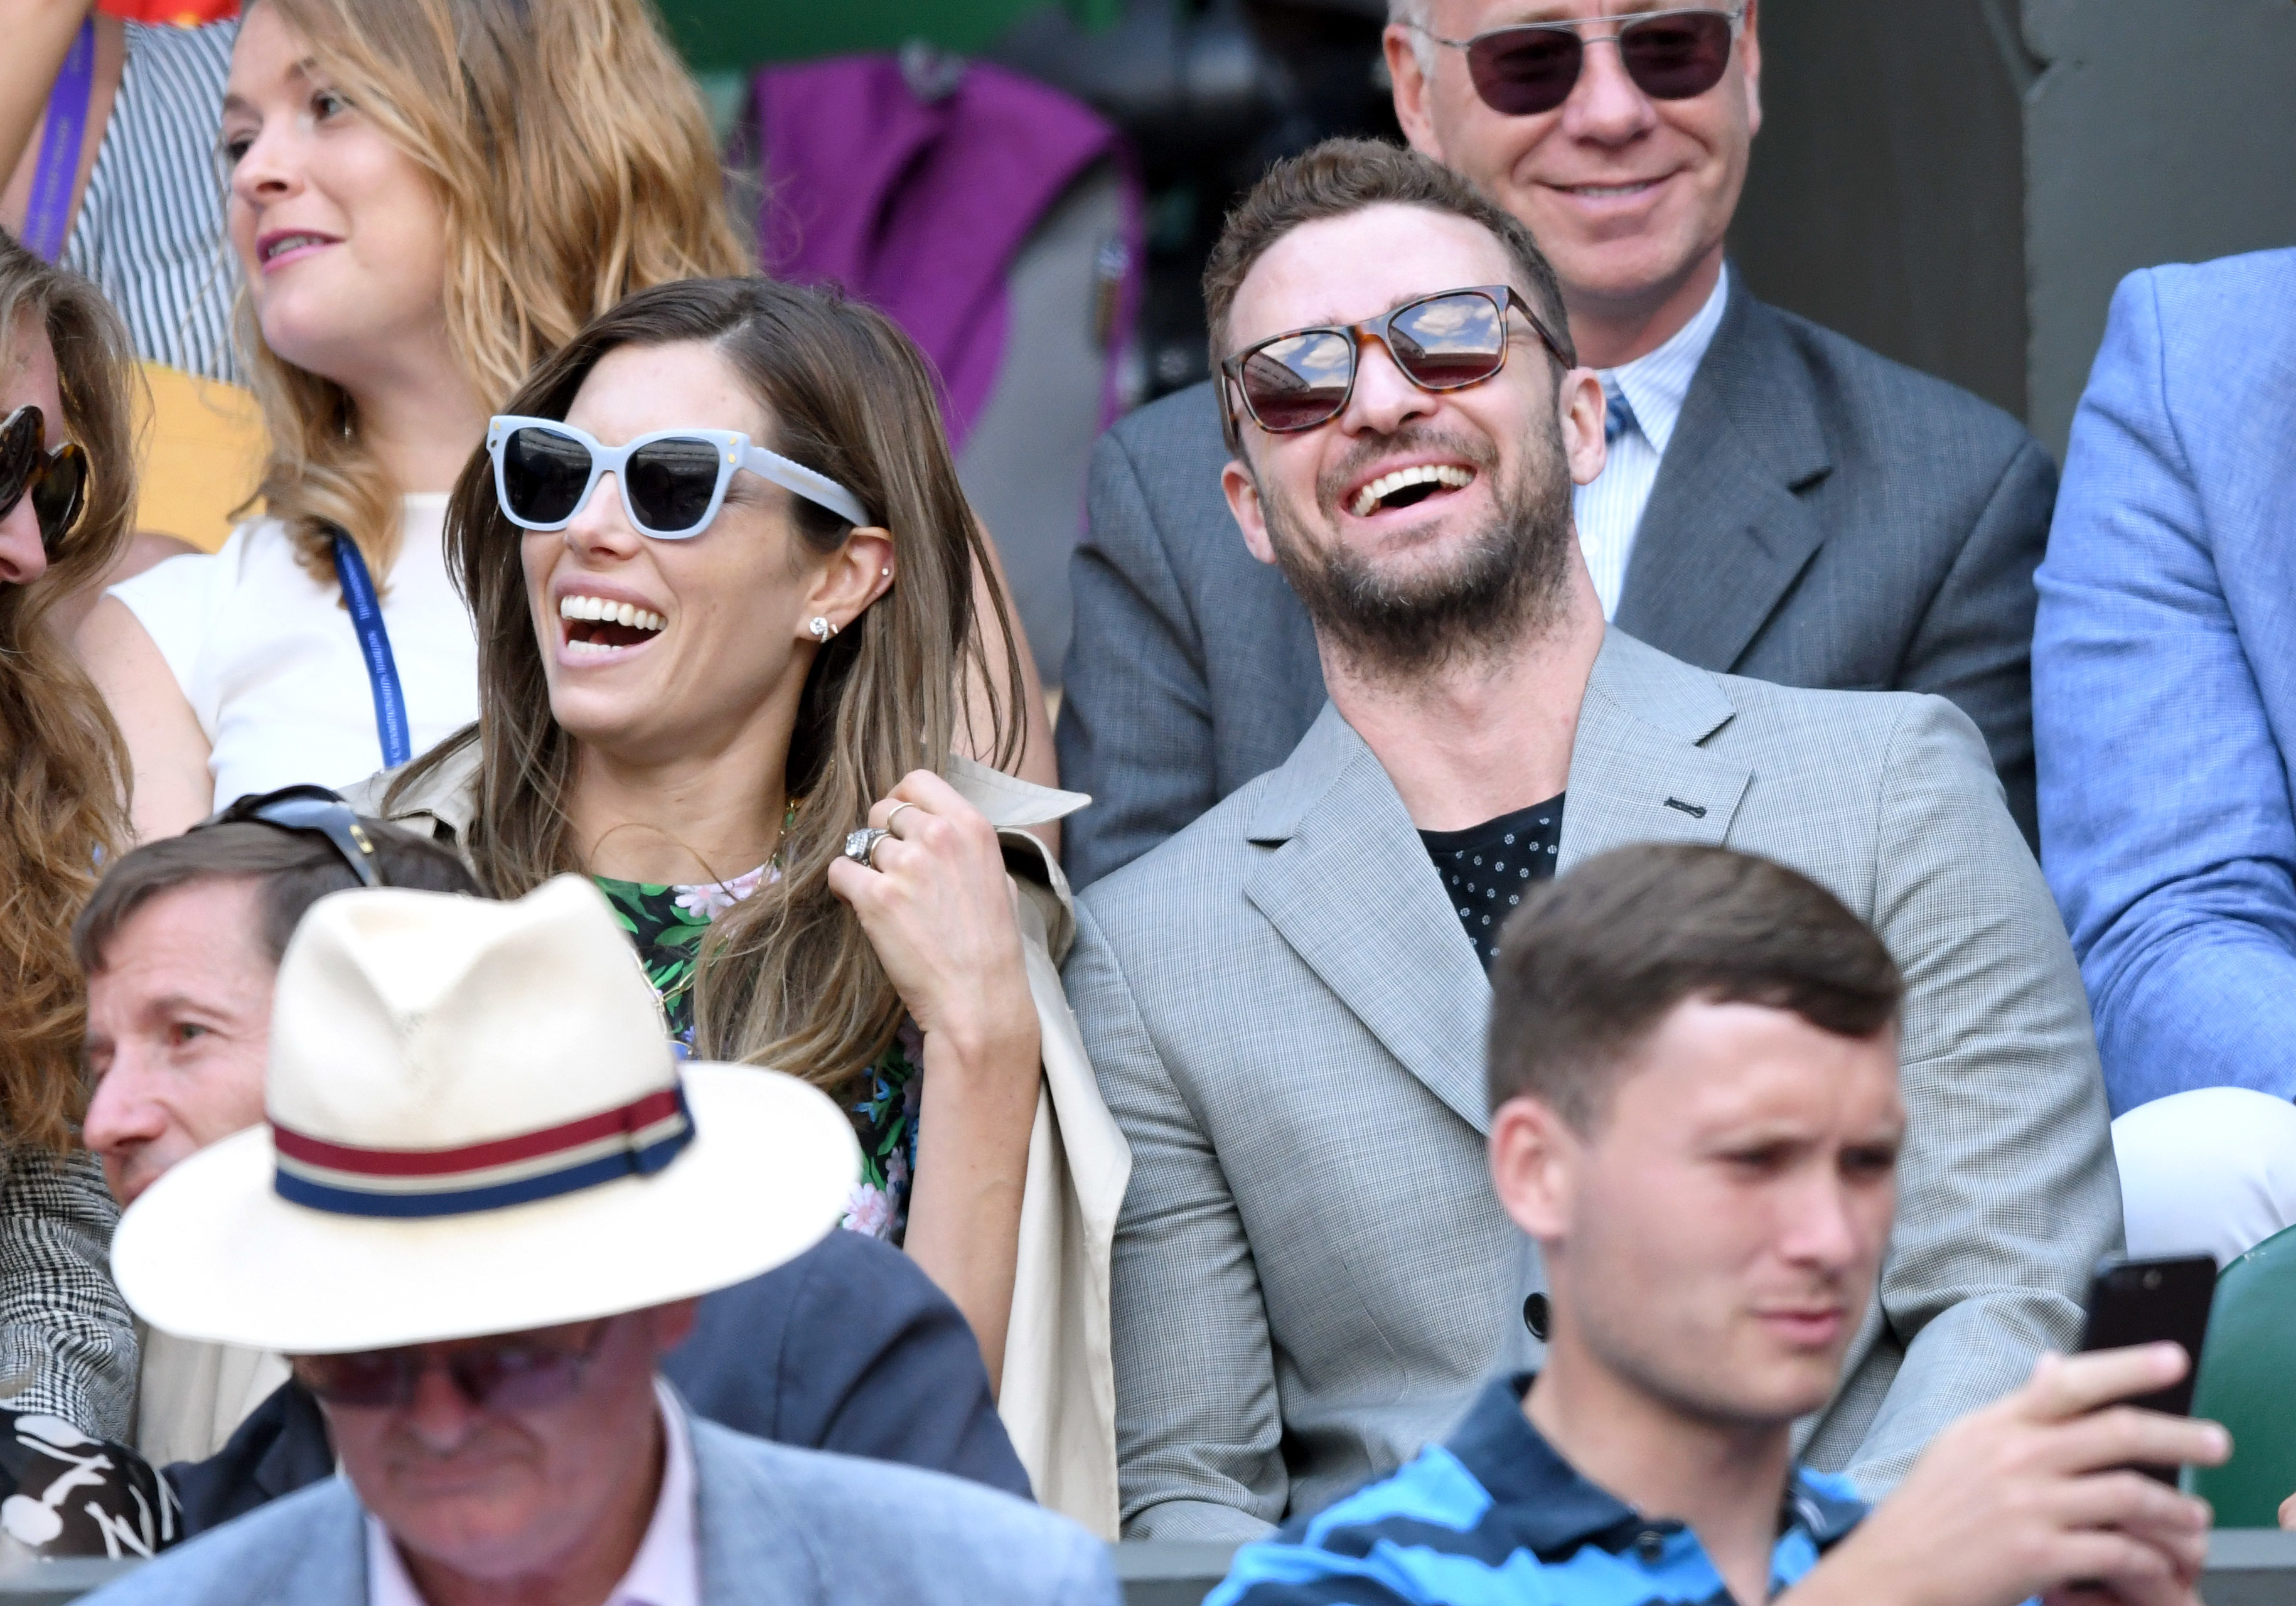 Jessica Biel and Justin Timberlake attend day eight of the Wimbledon Tennis Championships at the All England Lawn Tennis and Croquet Club in London on July 10, 2018.